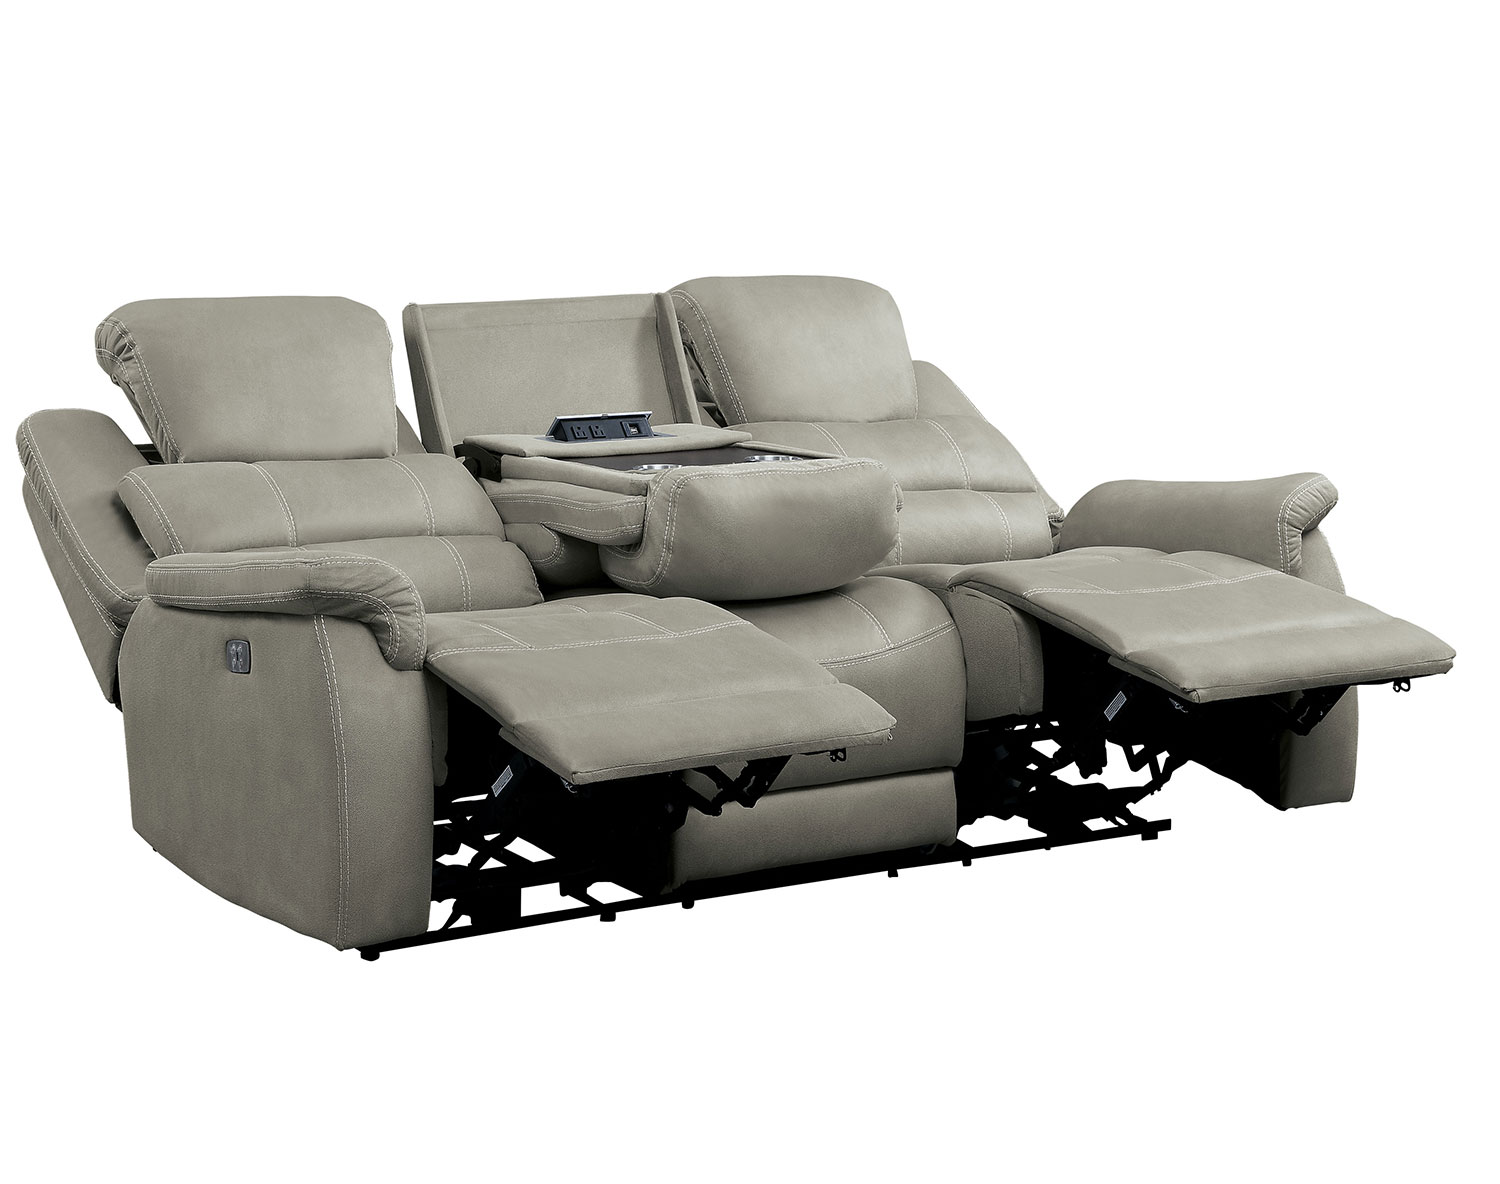 Homelegance Shola Power Double Reclining Sofa with Power Headrests, Drop-Down Cup holders and Receptacles - Gray